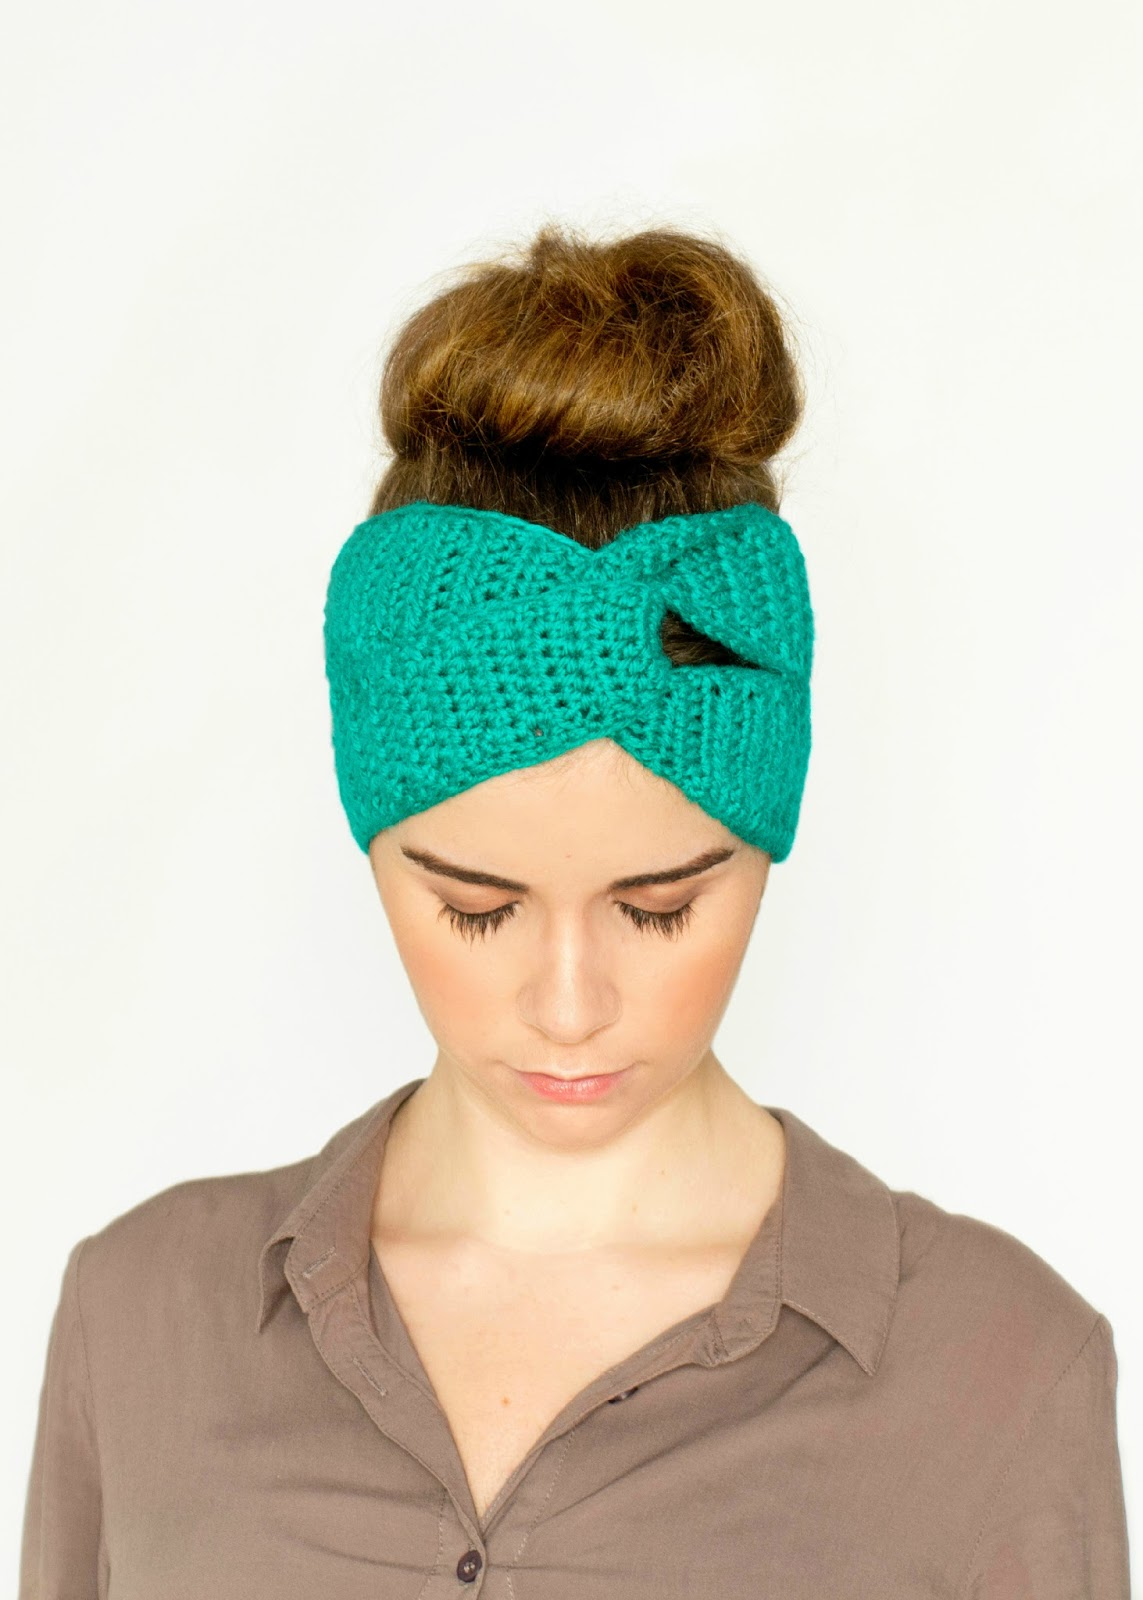 Free Crochet Pattern For Turban Headband : Hopeful Honey Craft, Crochet, Create: Twisted Turban ...